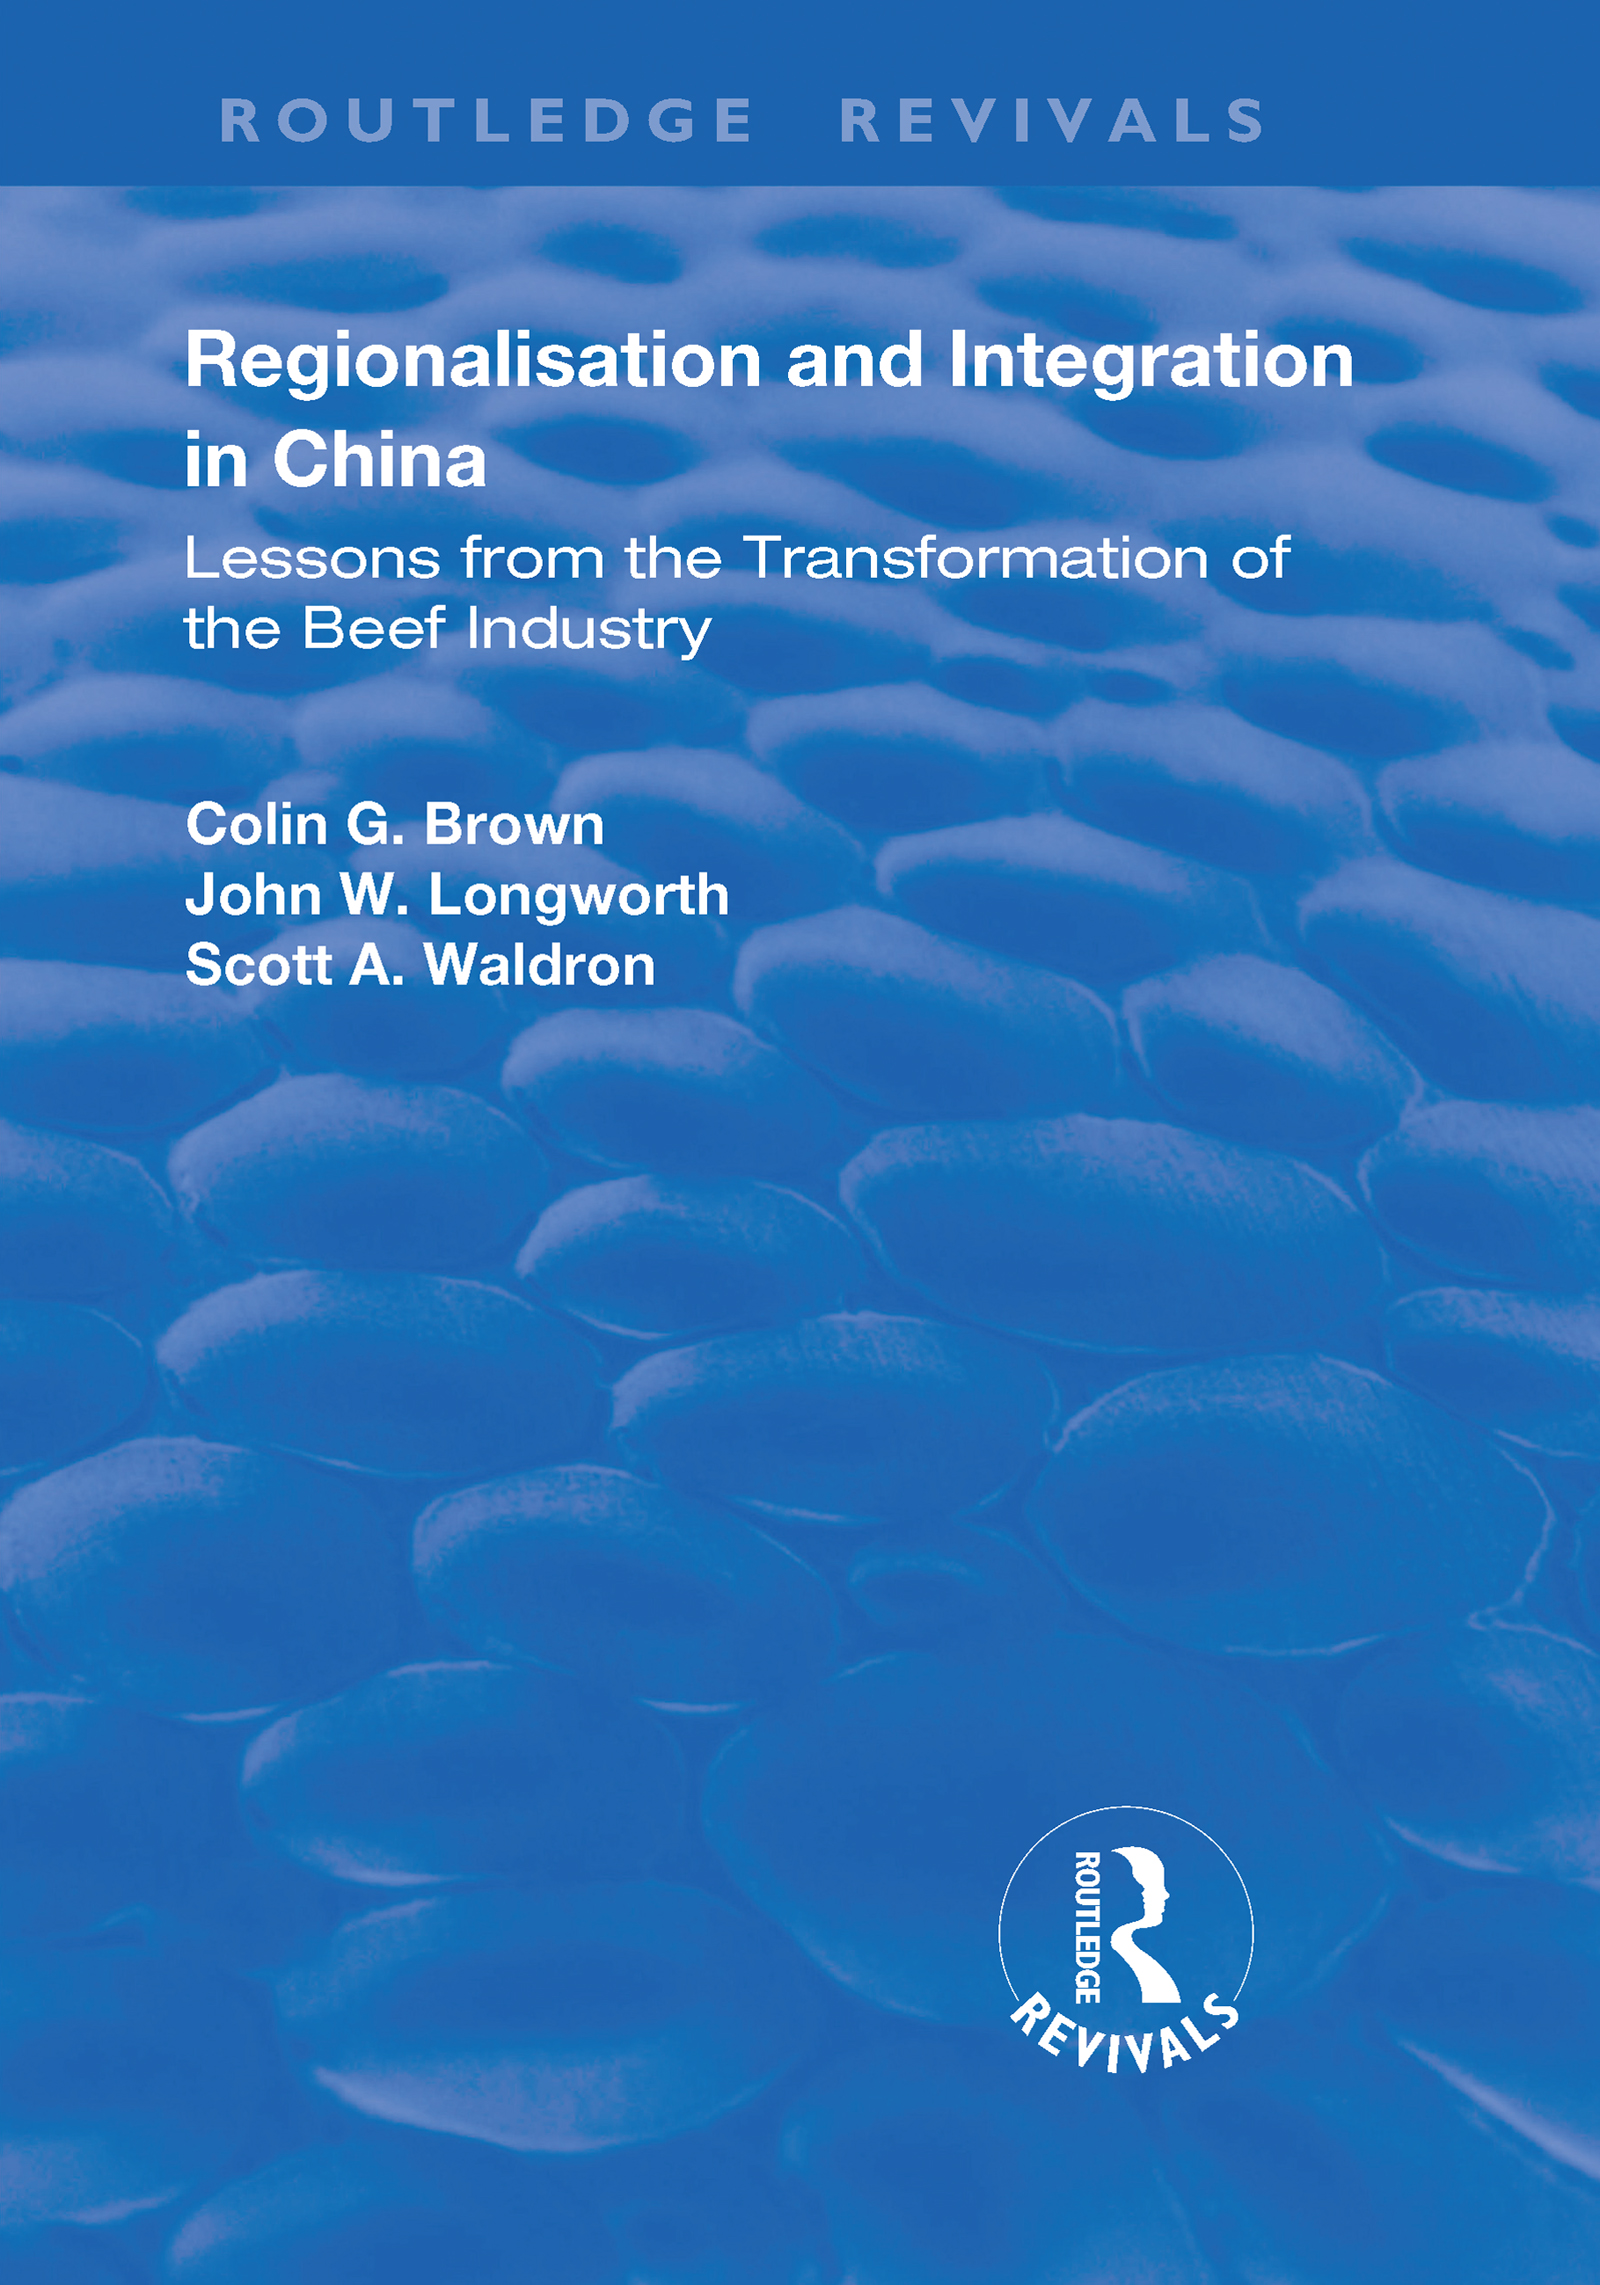 Regionalisation and Integration in China